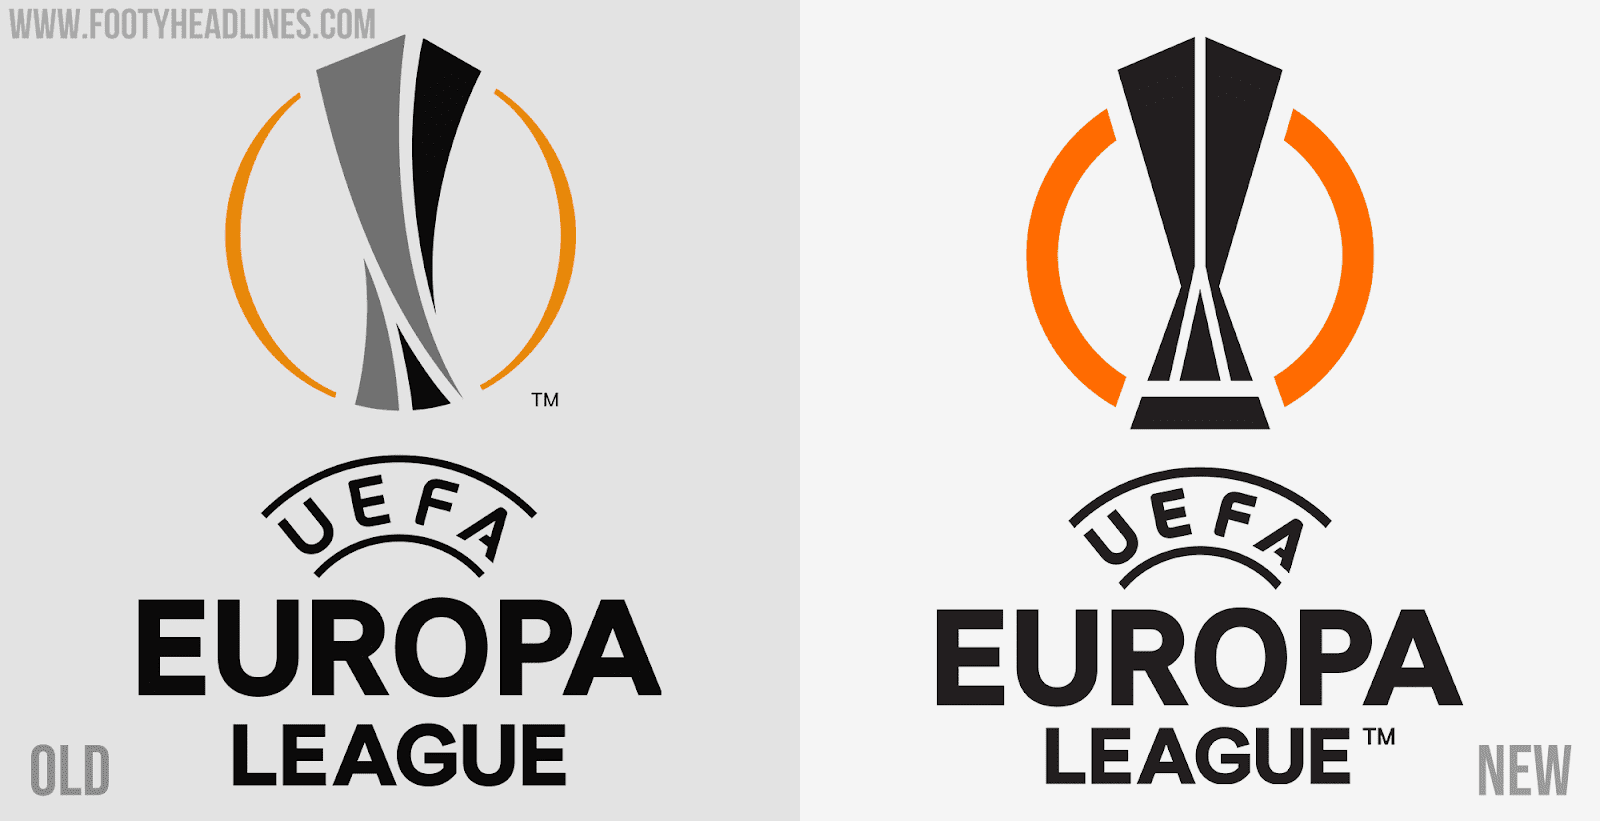 Standing 57.5cm tall and weighing 11kg, the trophy. UEFA Europa League 2021 Logo Revealed - Footy Headlines